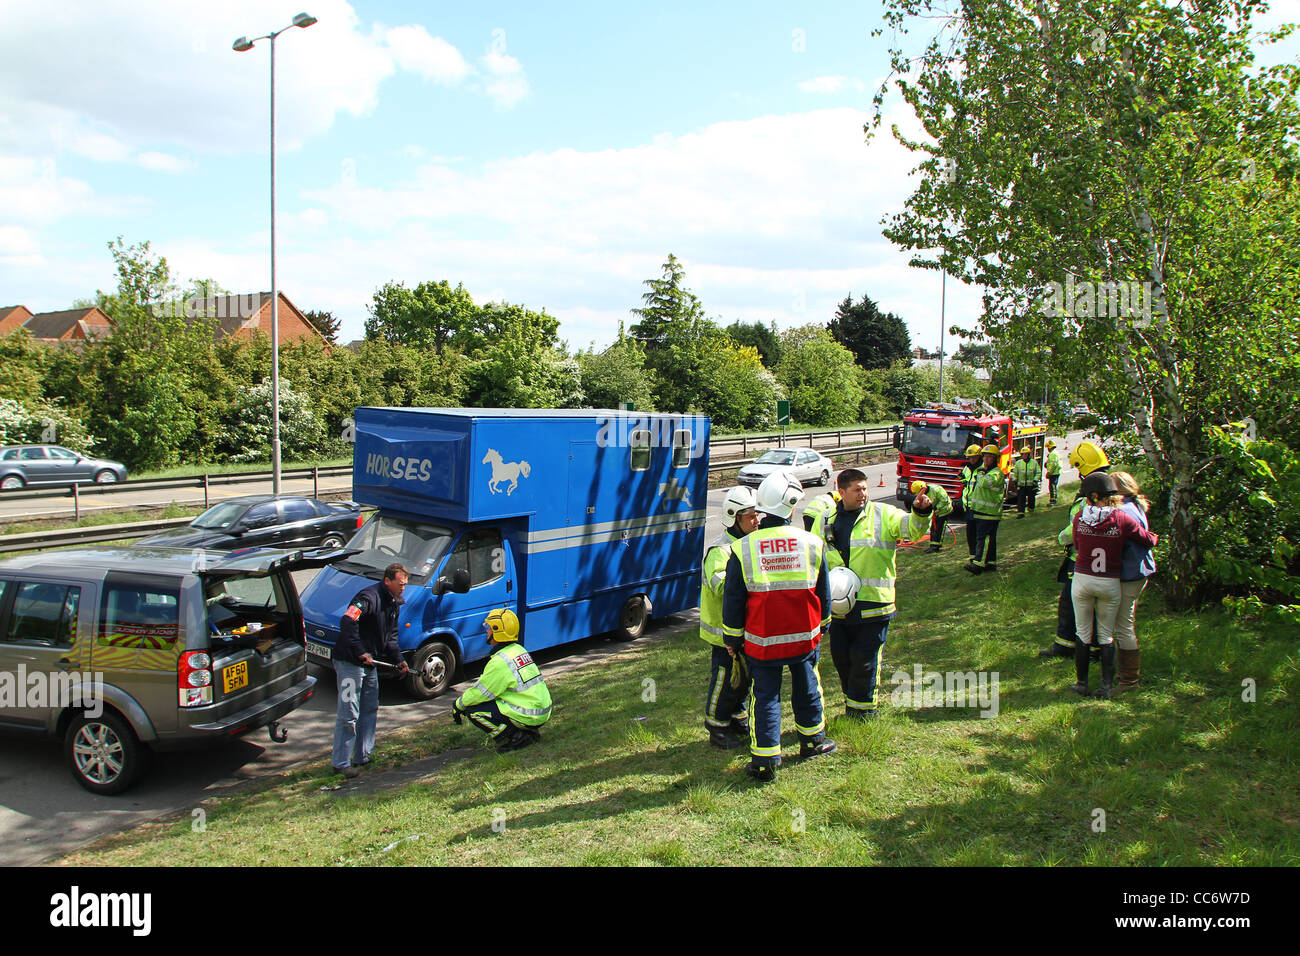 A horse rescue on the A1 in Cambridgeshire after the horse's leg became trapped while in transit. - Stock Image